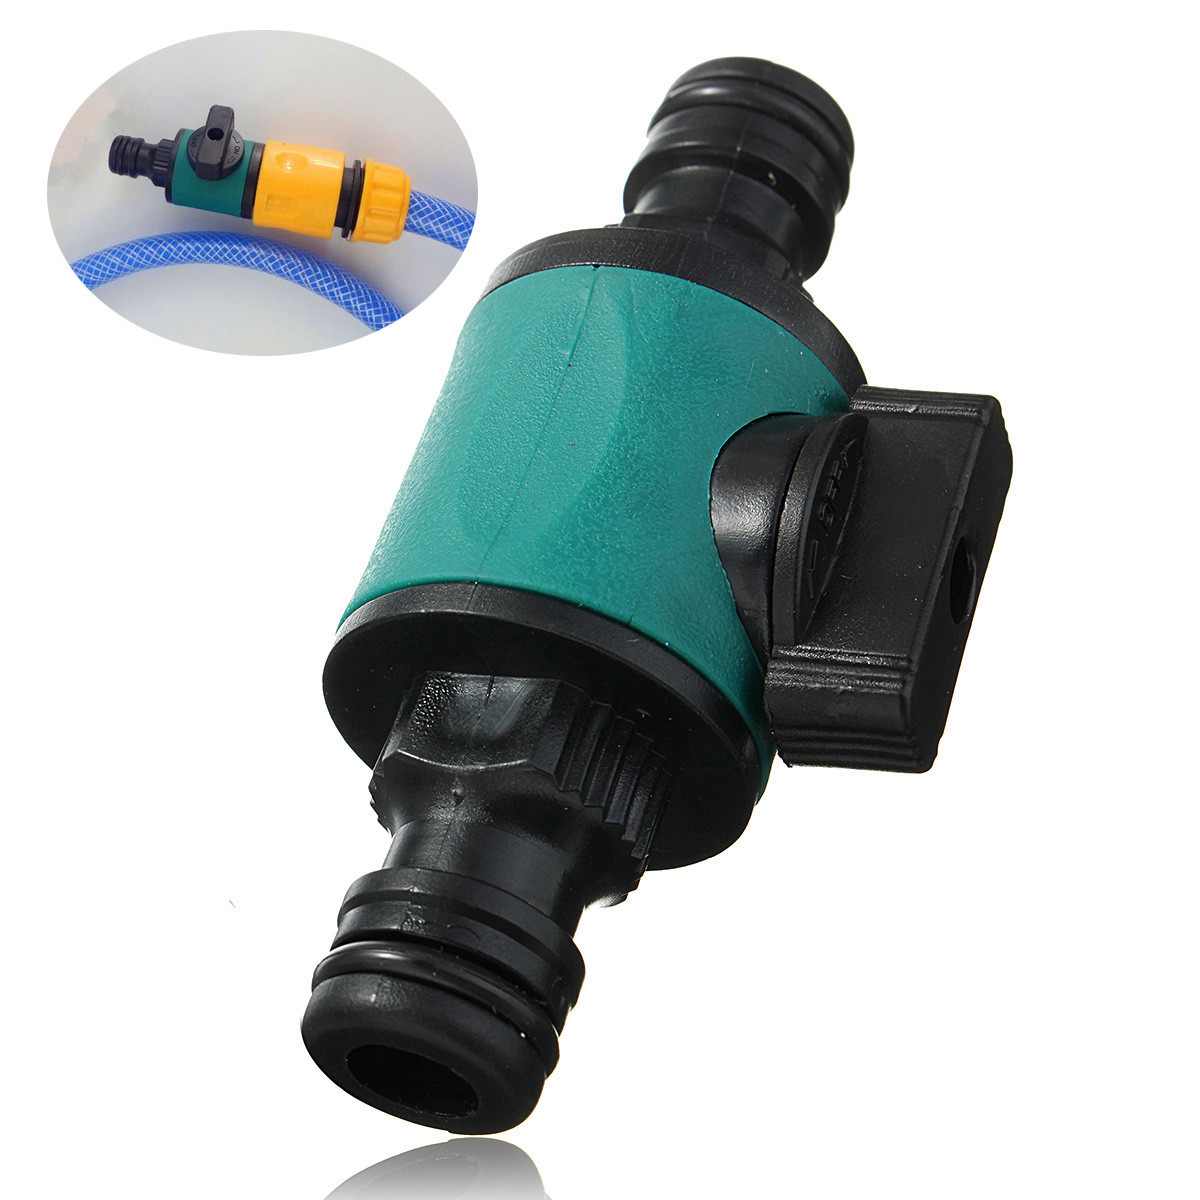 Garden Hose Tap Pipe Compatible 1/2'' 2-Way Connector Valve Convertor Fitting Adapter Tool